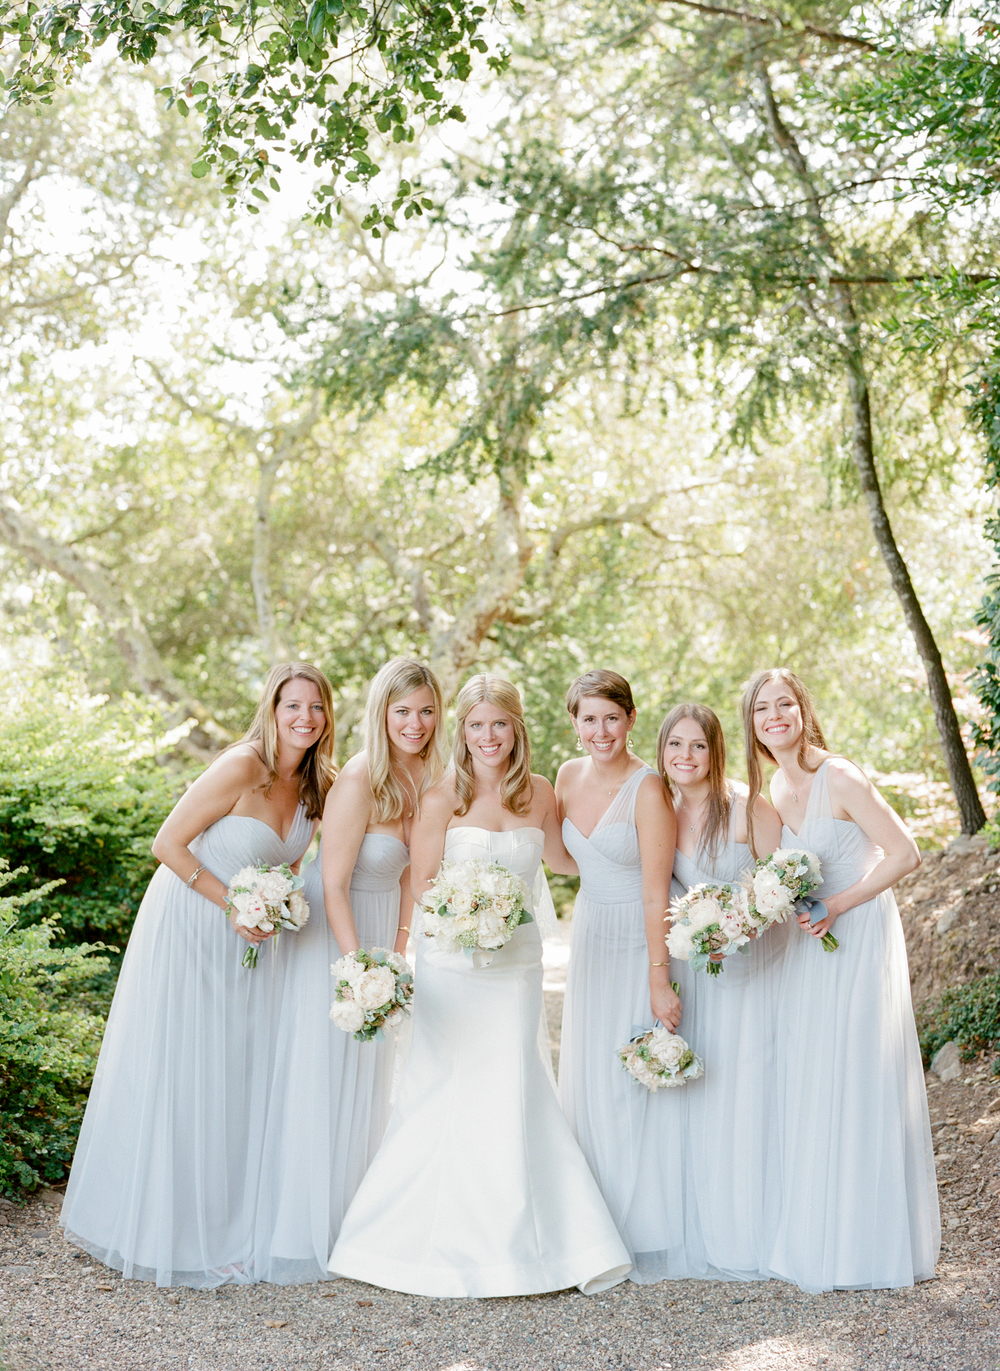 Sarah and her bridesmaids, dressed in pastel blue, lean in close for a photograph, by Sylvie Gil